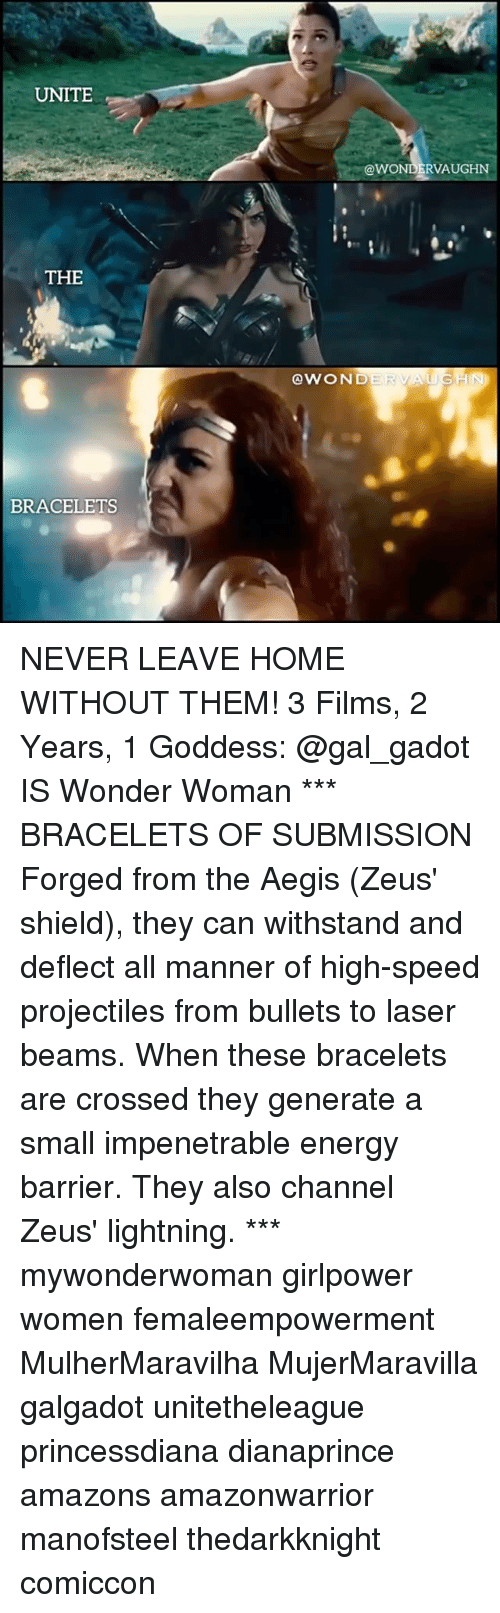 Energy, Memes, and Home: UNITE  @WONDERVAUGHN  THE  @WOND  BRACELETS NEVER LEAVE HOME WITHOUT THEM! 3 Films, 2 Years, 1 Goddess: @gal_gadot IS Wonder Woman *** BRACELETS OF SUBMISSION Forged from the Aegis (Zeus' shield), they can withstand and deflect all manner of high-speed projectiles from bullets to laser beams. When these bracelets are crossed they generate a small impenetrable energy barrier. They also channel Zeus' lightning. *** mywonderwoman girlpower women femaleempowerment MulherMaravilha MujerMaravilla galgadot unitetheleague princessdiana dianaprince amazons amazonwarrior manofsteel thedarkknight comiccon